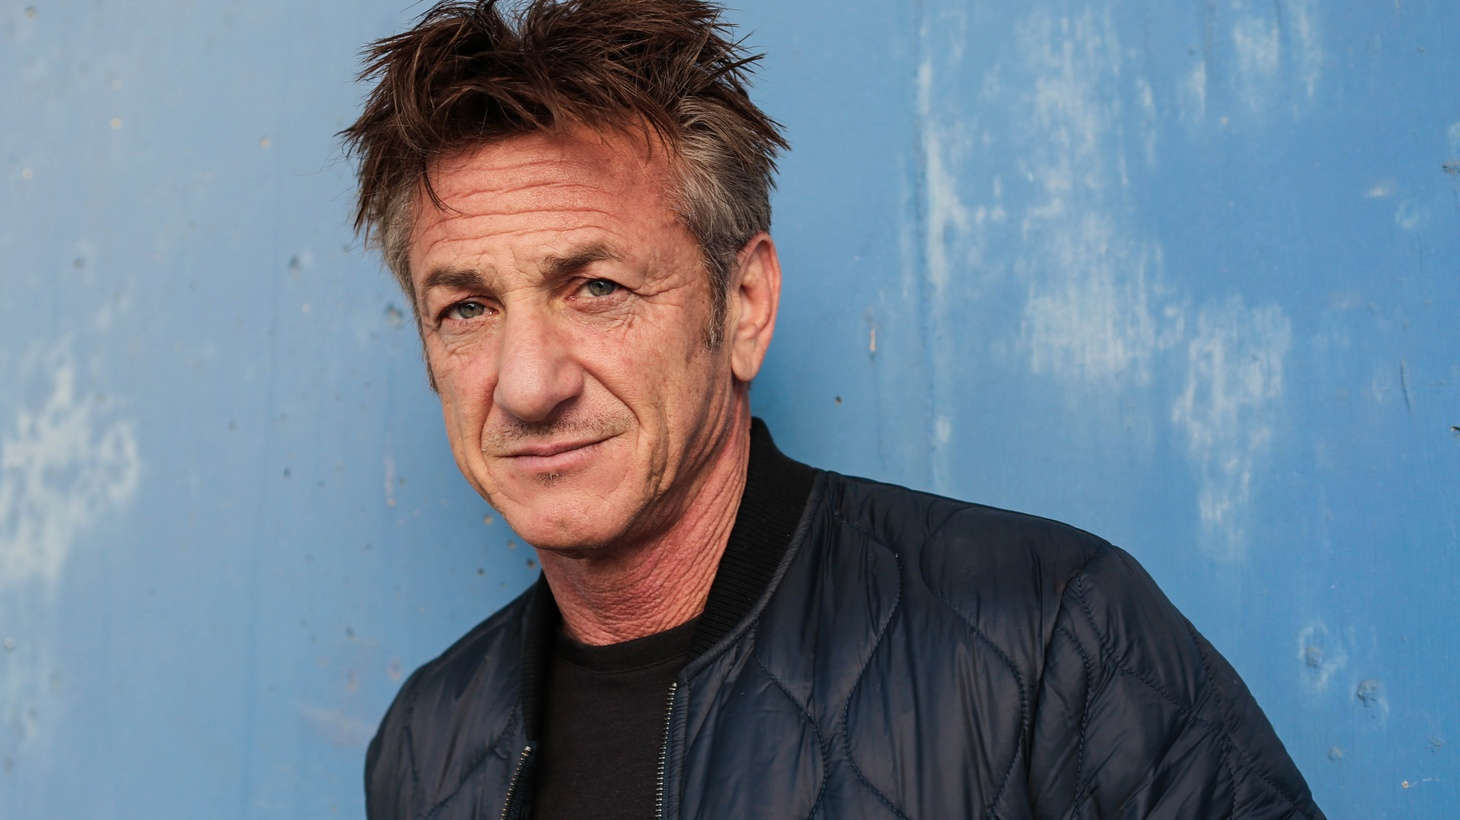 A transcendent apocalyptic satire, an outrageous improvisation of a book, embedded with the rhythms of American prose, Sean Penn discusses his first novel, Bob Honey Who Just Do Stuff.